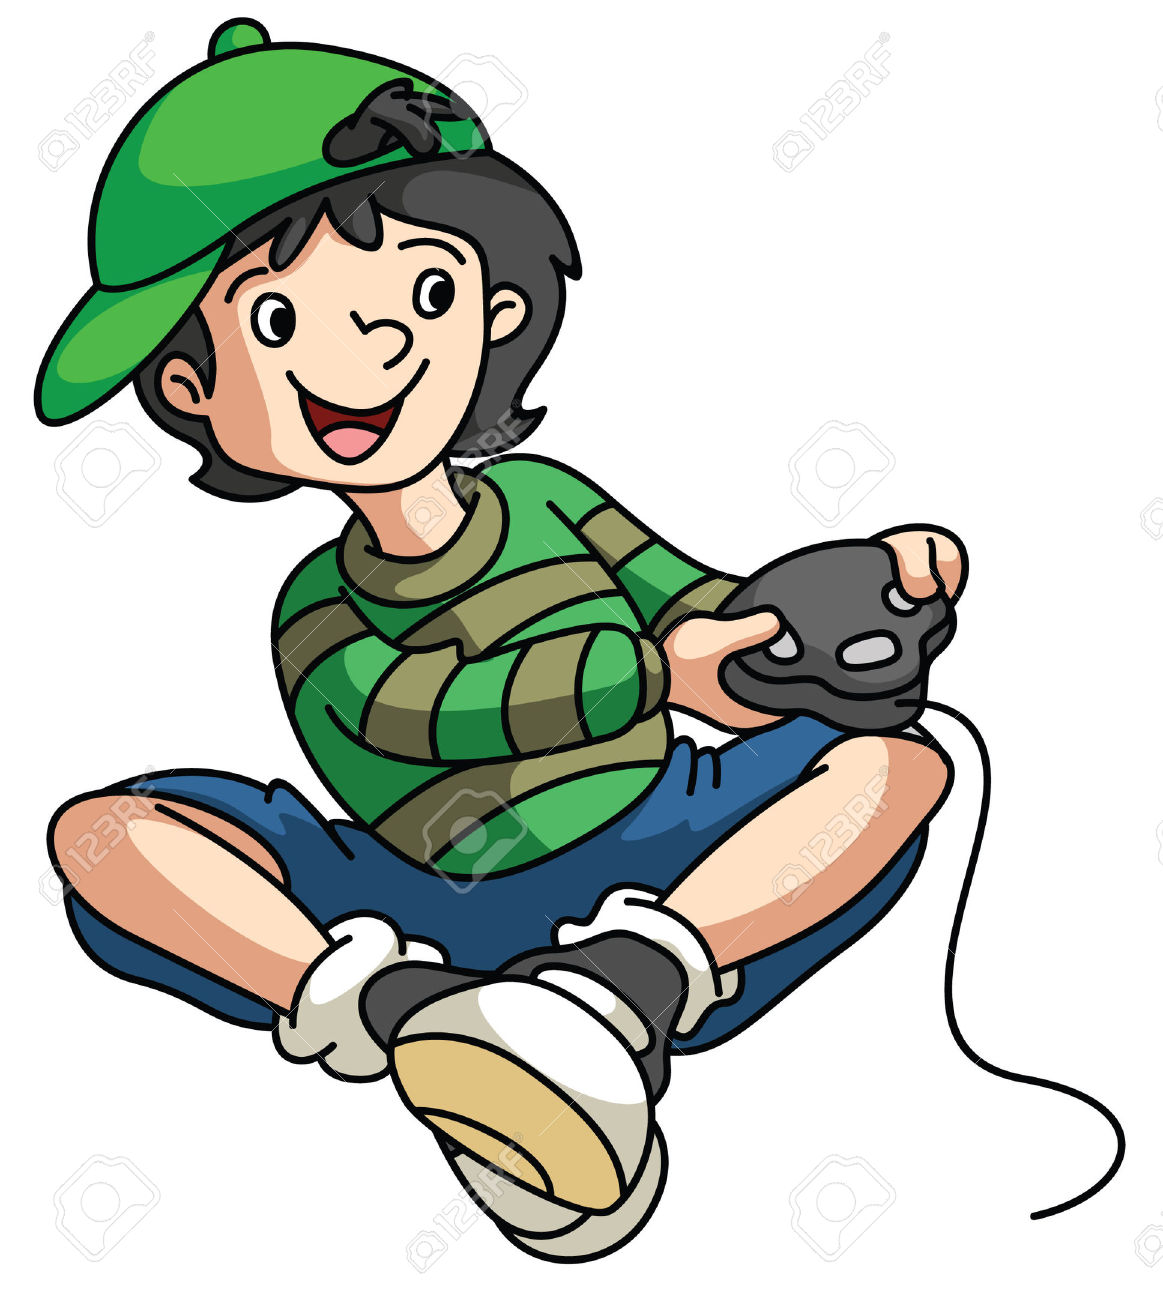 548 Gamer Boy Stock Vector Illustration And Royalty Free Gamer Boy.